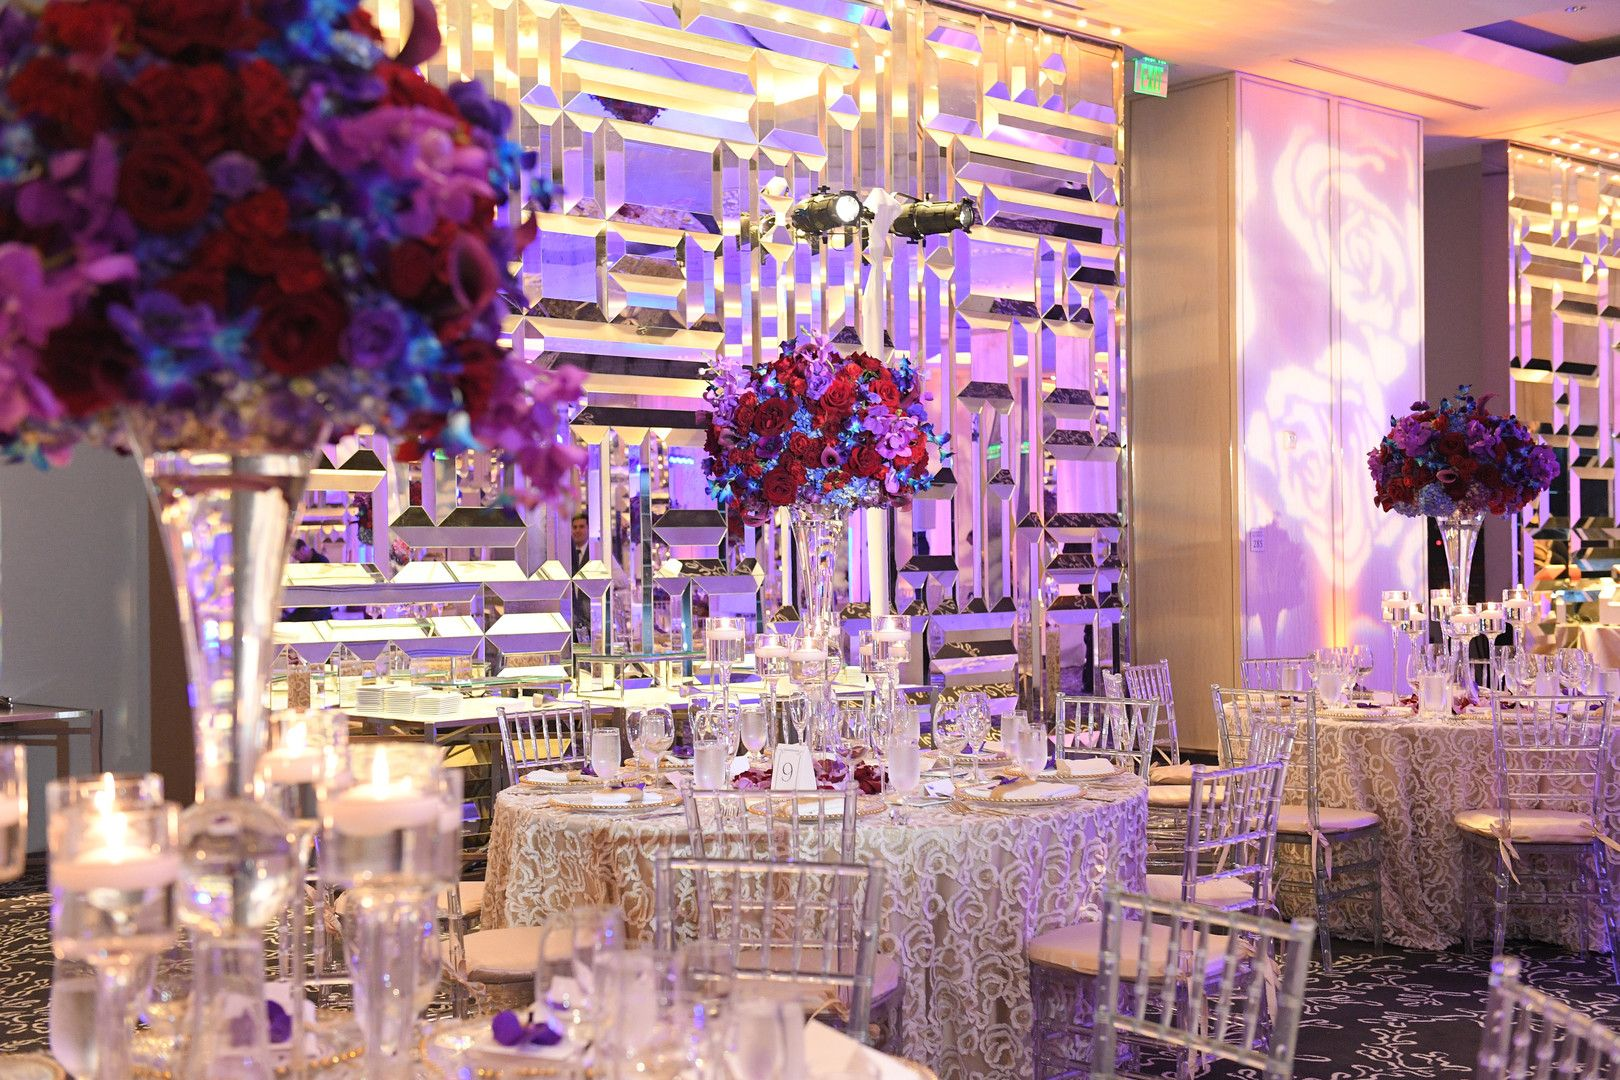 A Luxury Orchid Filled Miami Beach Wedding Orchid Centerpieces Blue Centerpieces Purple Centerpieces Blue Centerpieces Wedding Centerpieces Rustic Chic